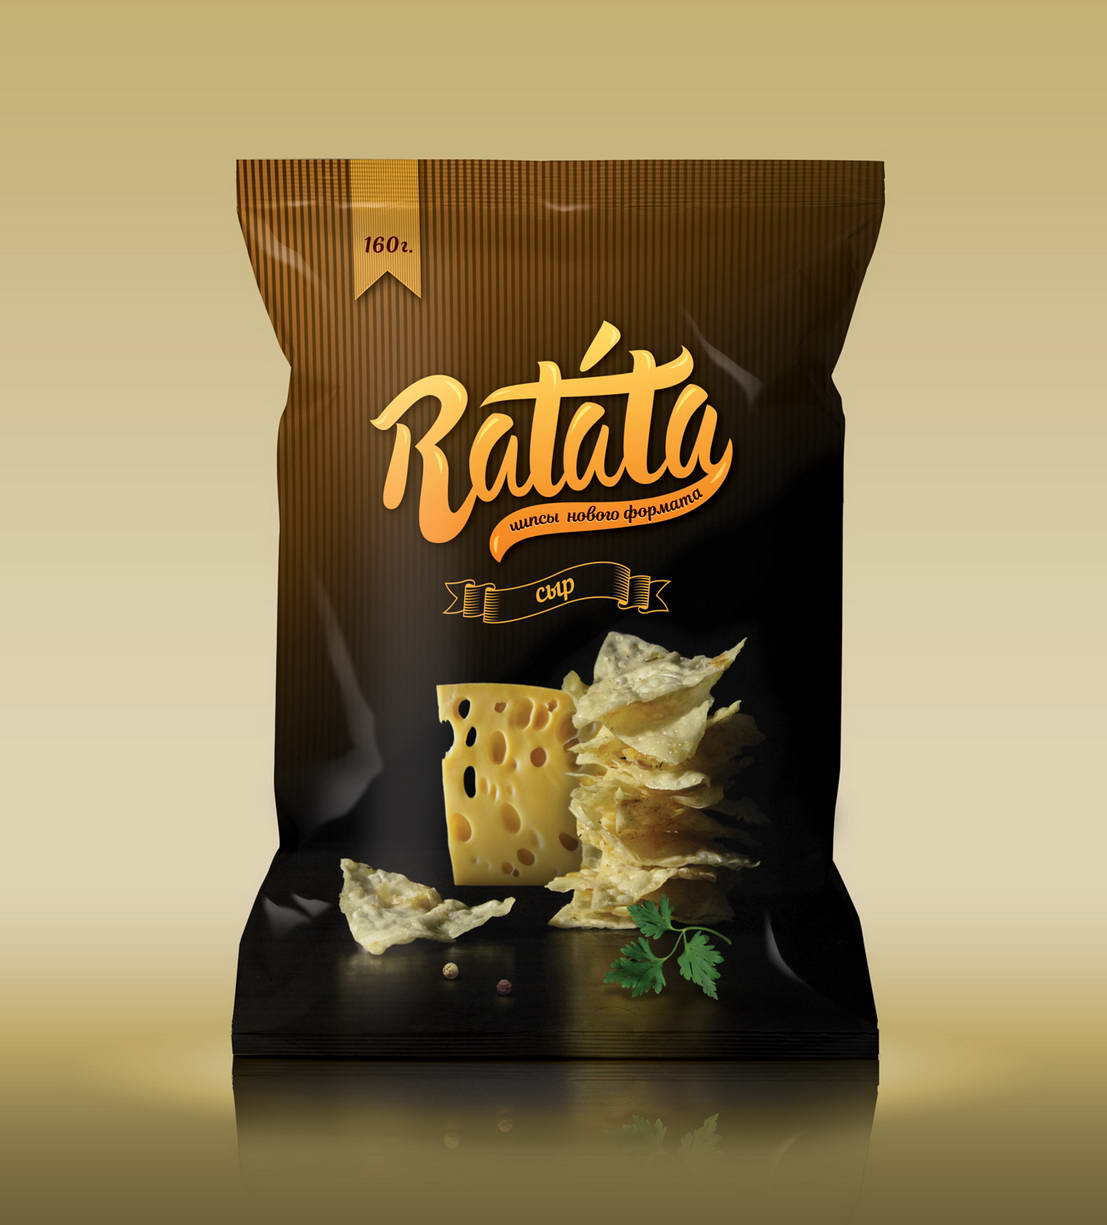 packaging design chips with cheese Ratata